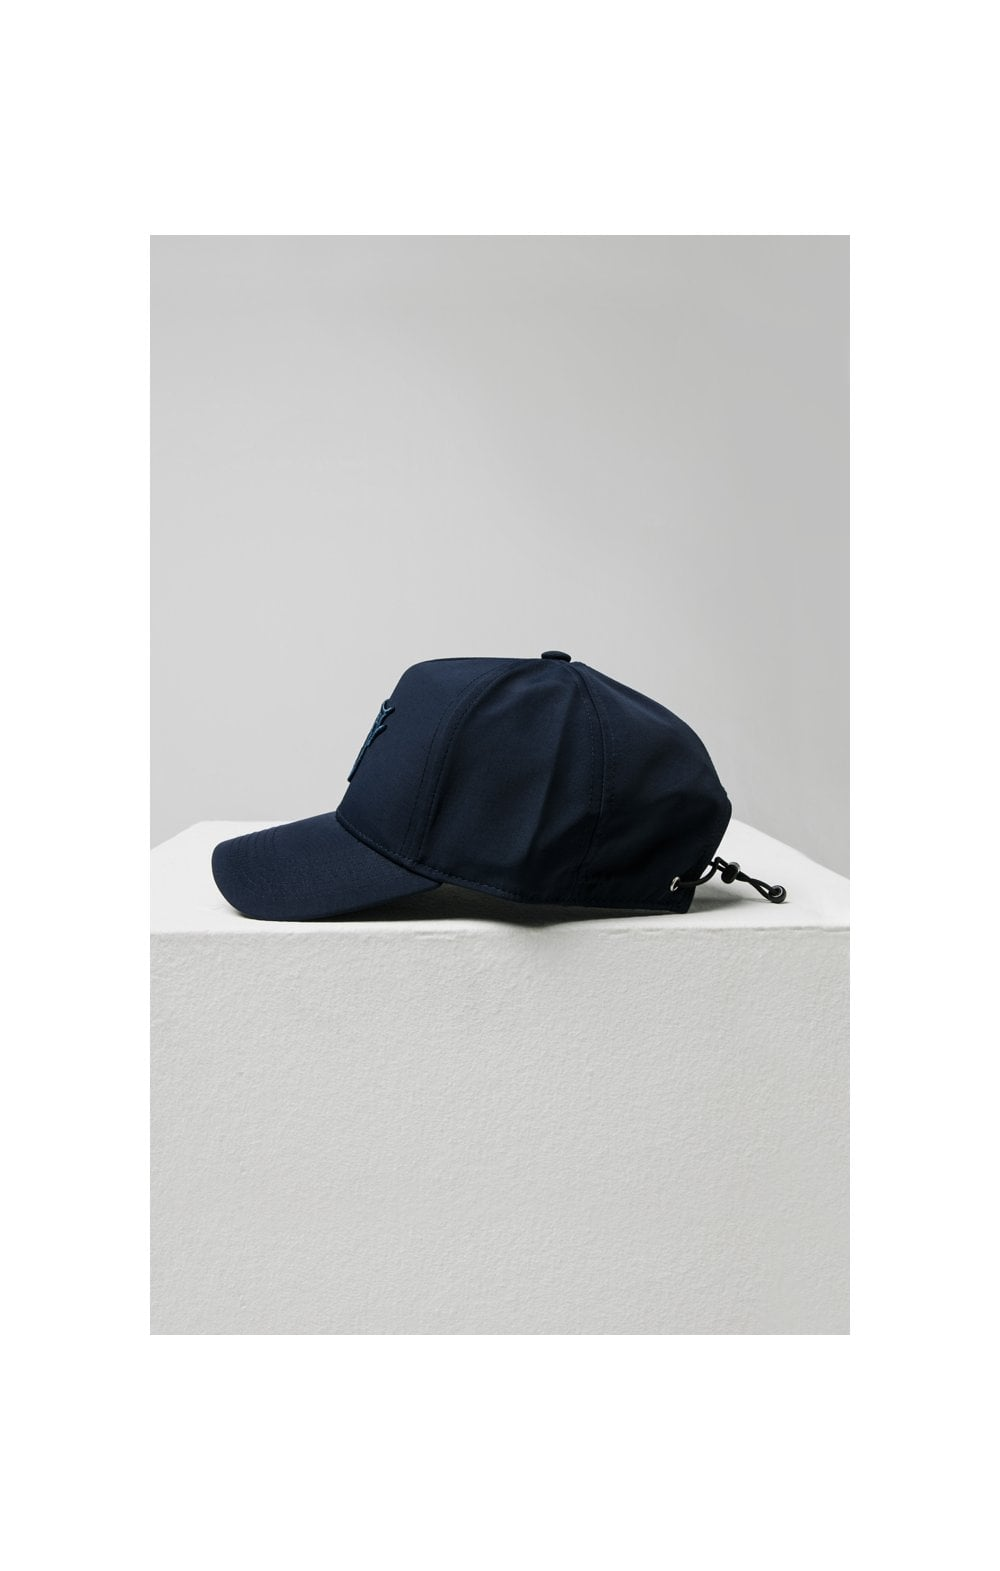 Load image into Gallery viewer, SikSilk Crushed Nylon Full Trucker - Navy (4)